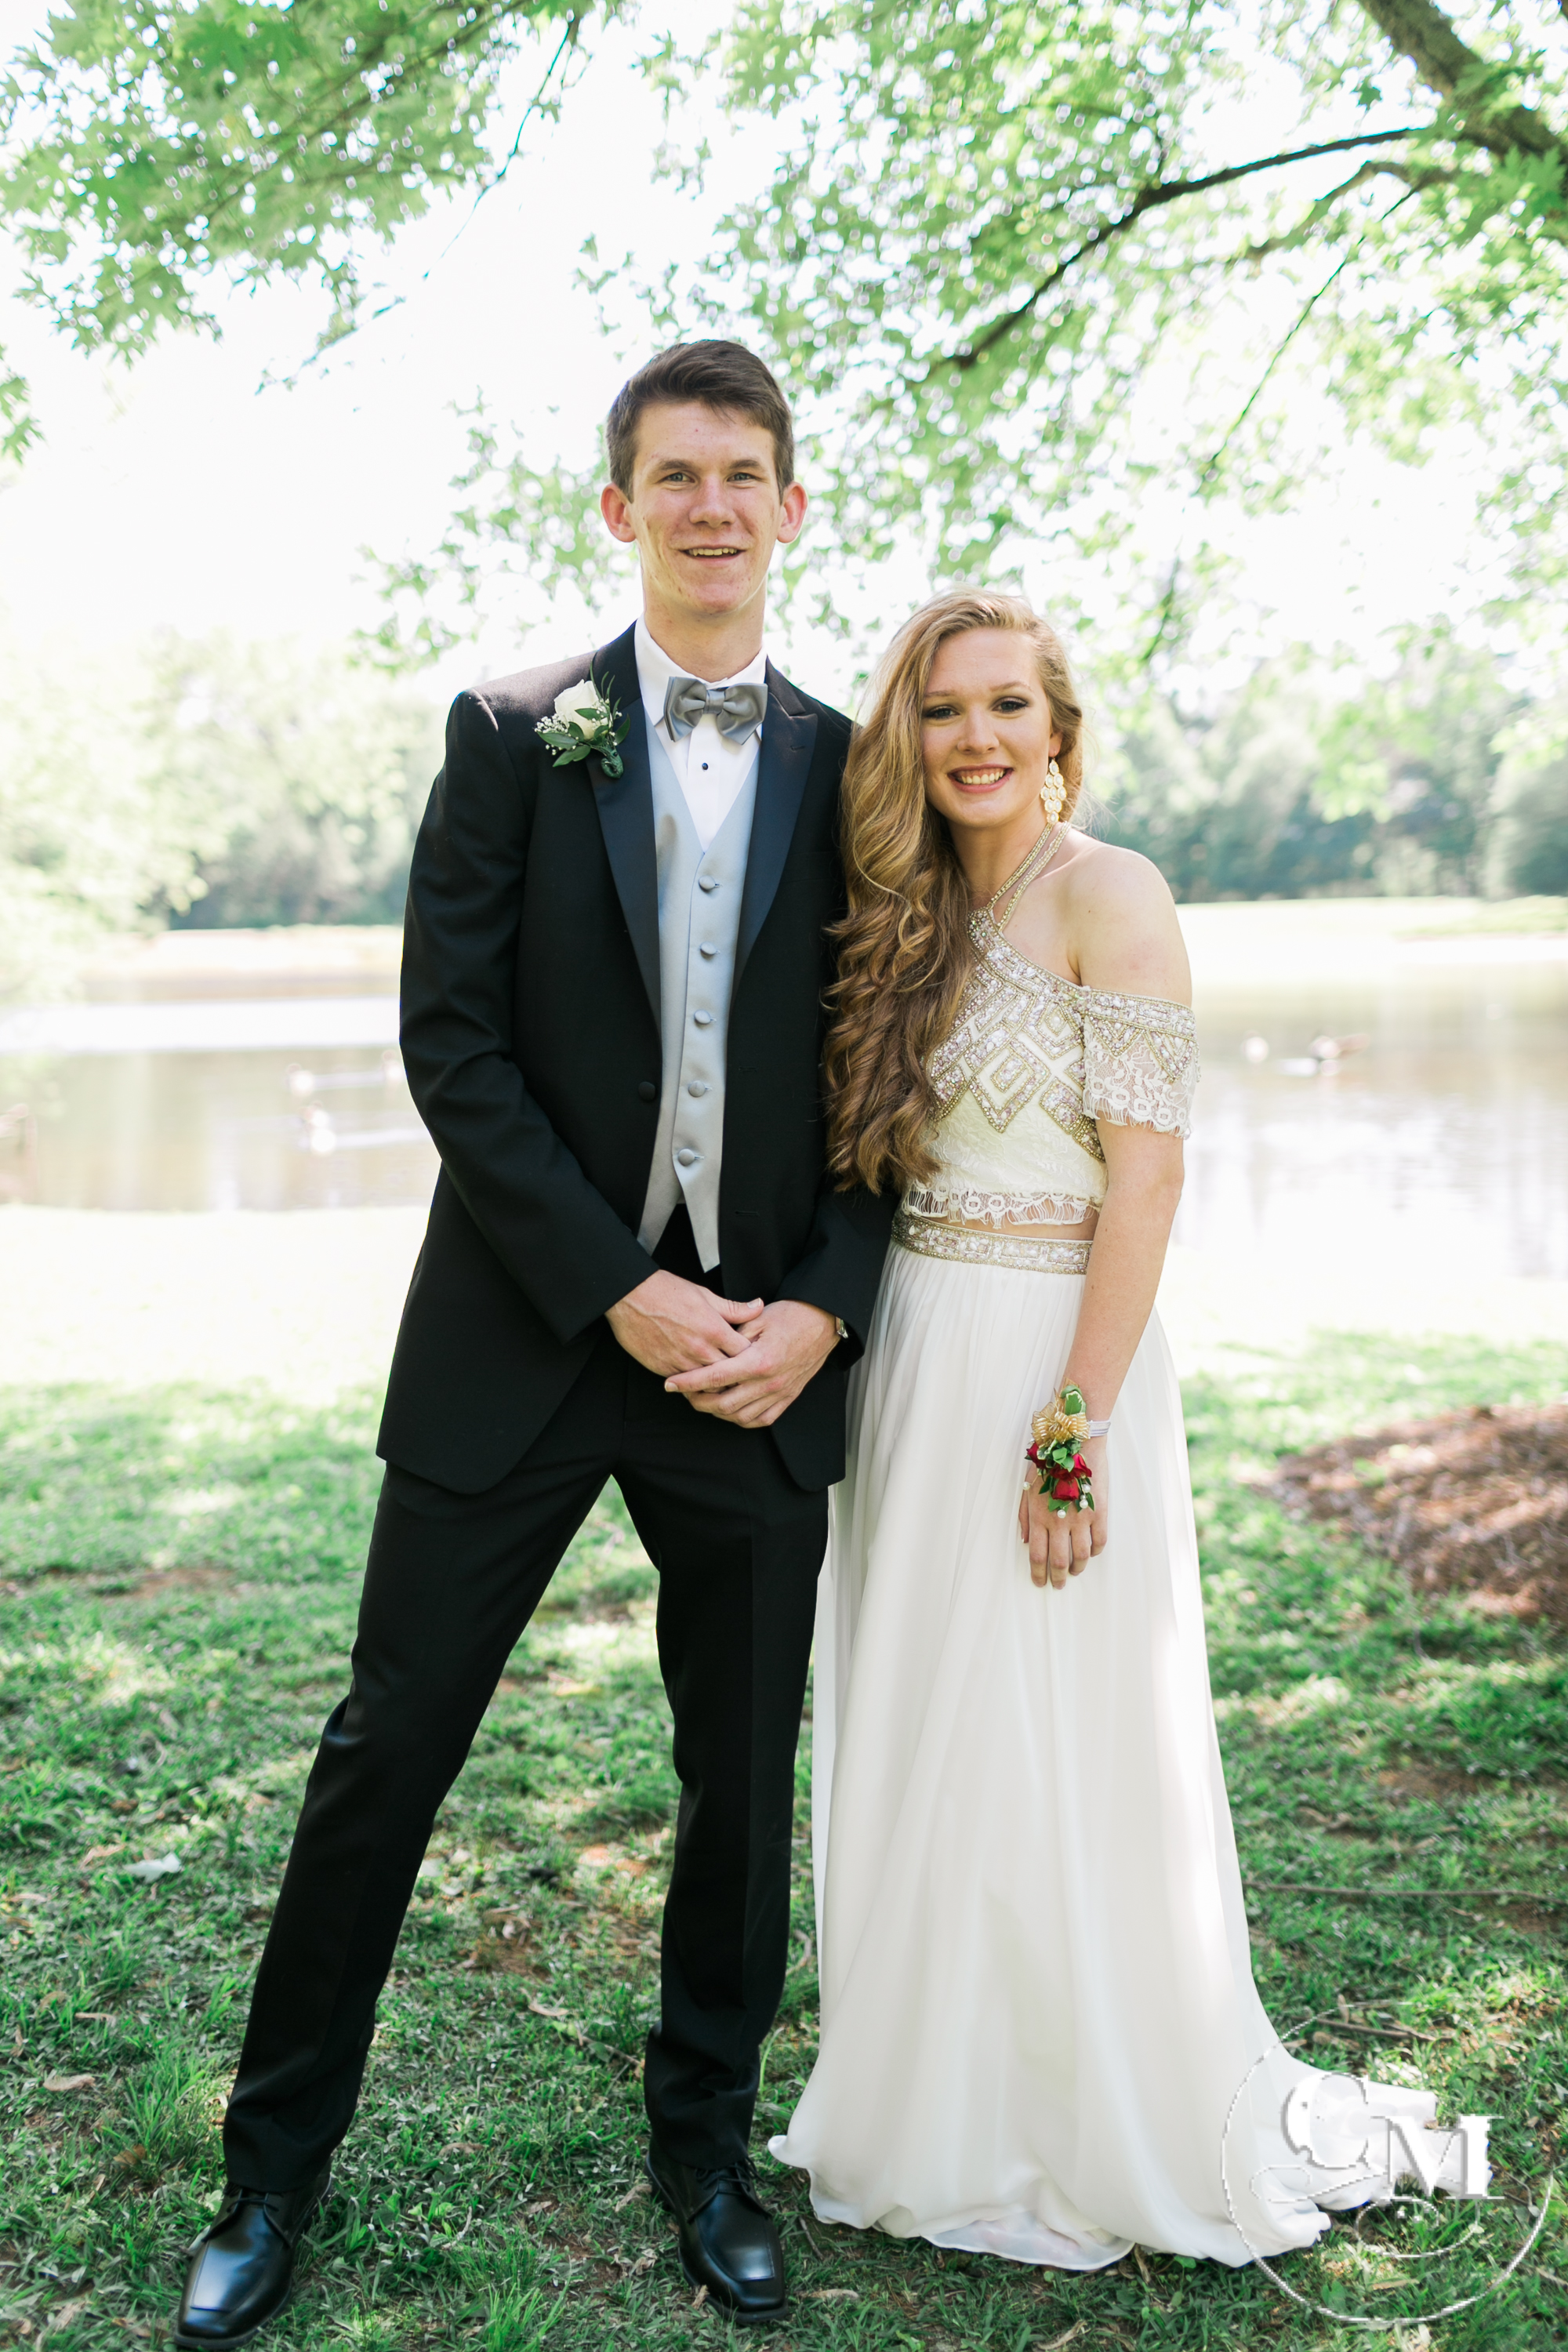 Alpharetta Teens Prom Night Photos Senior Photographer